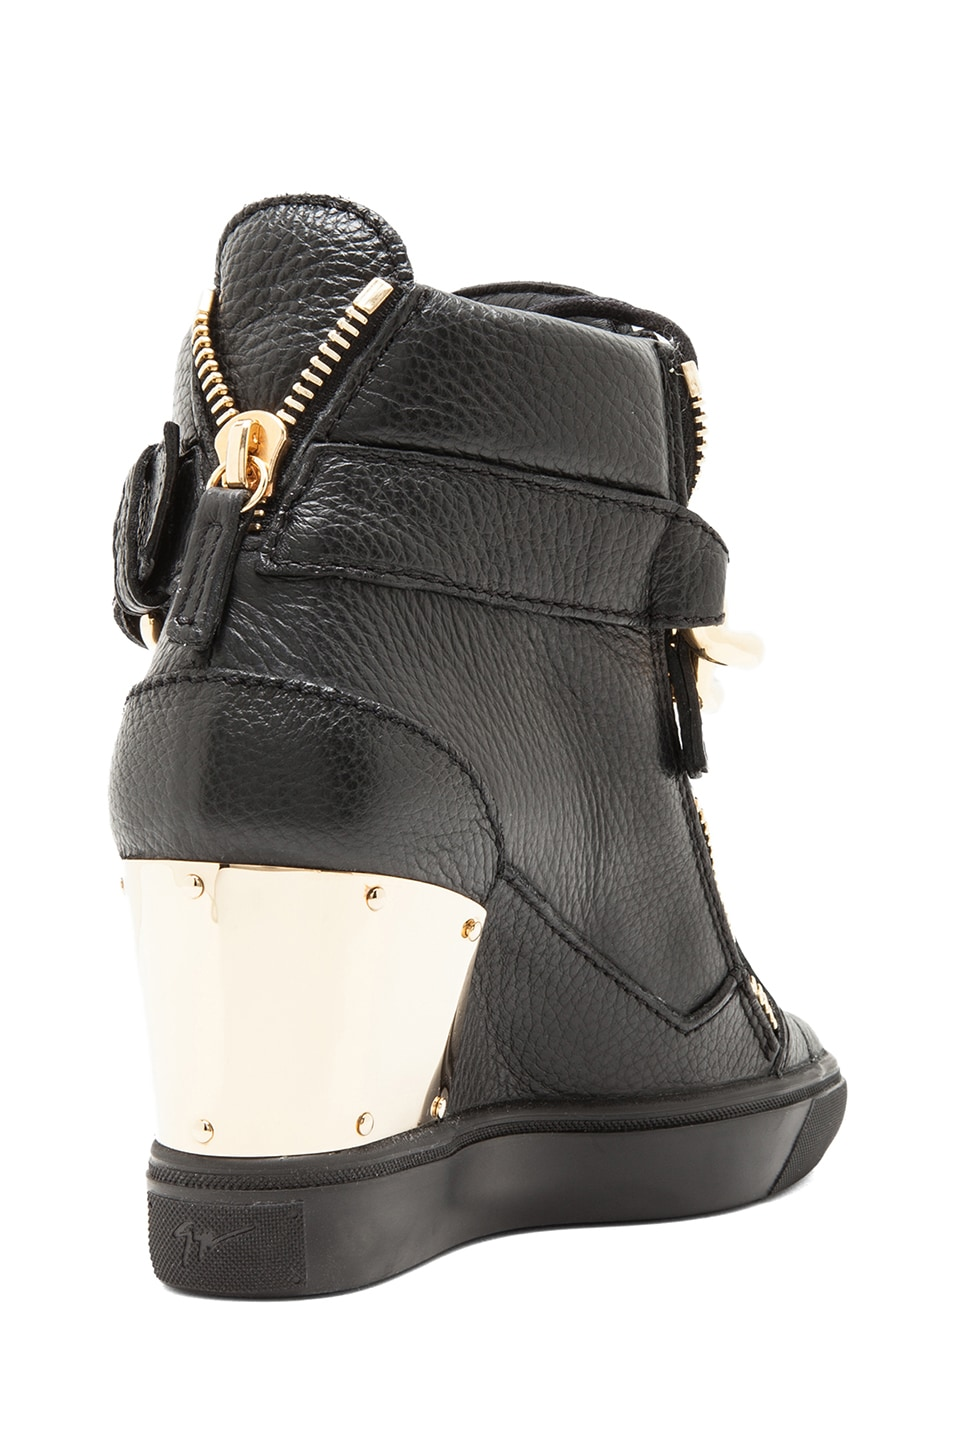 Image 3 of Giuseppe Zanotti Lorenz Grained Leather Wedge Sneakers with Chain in Black